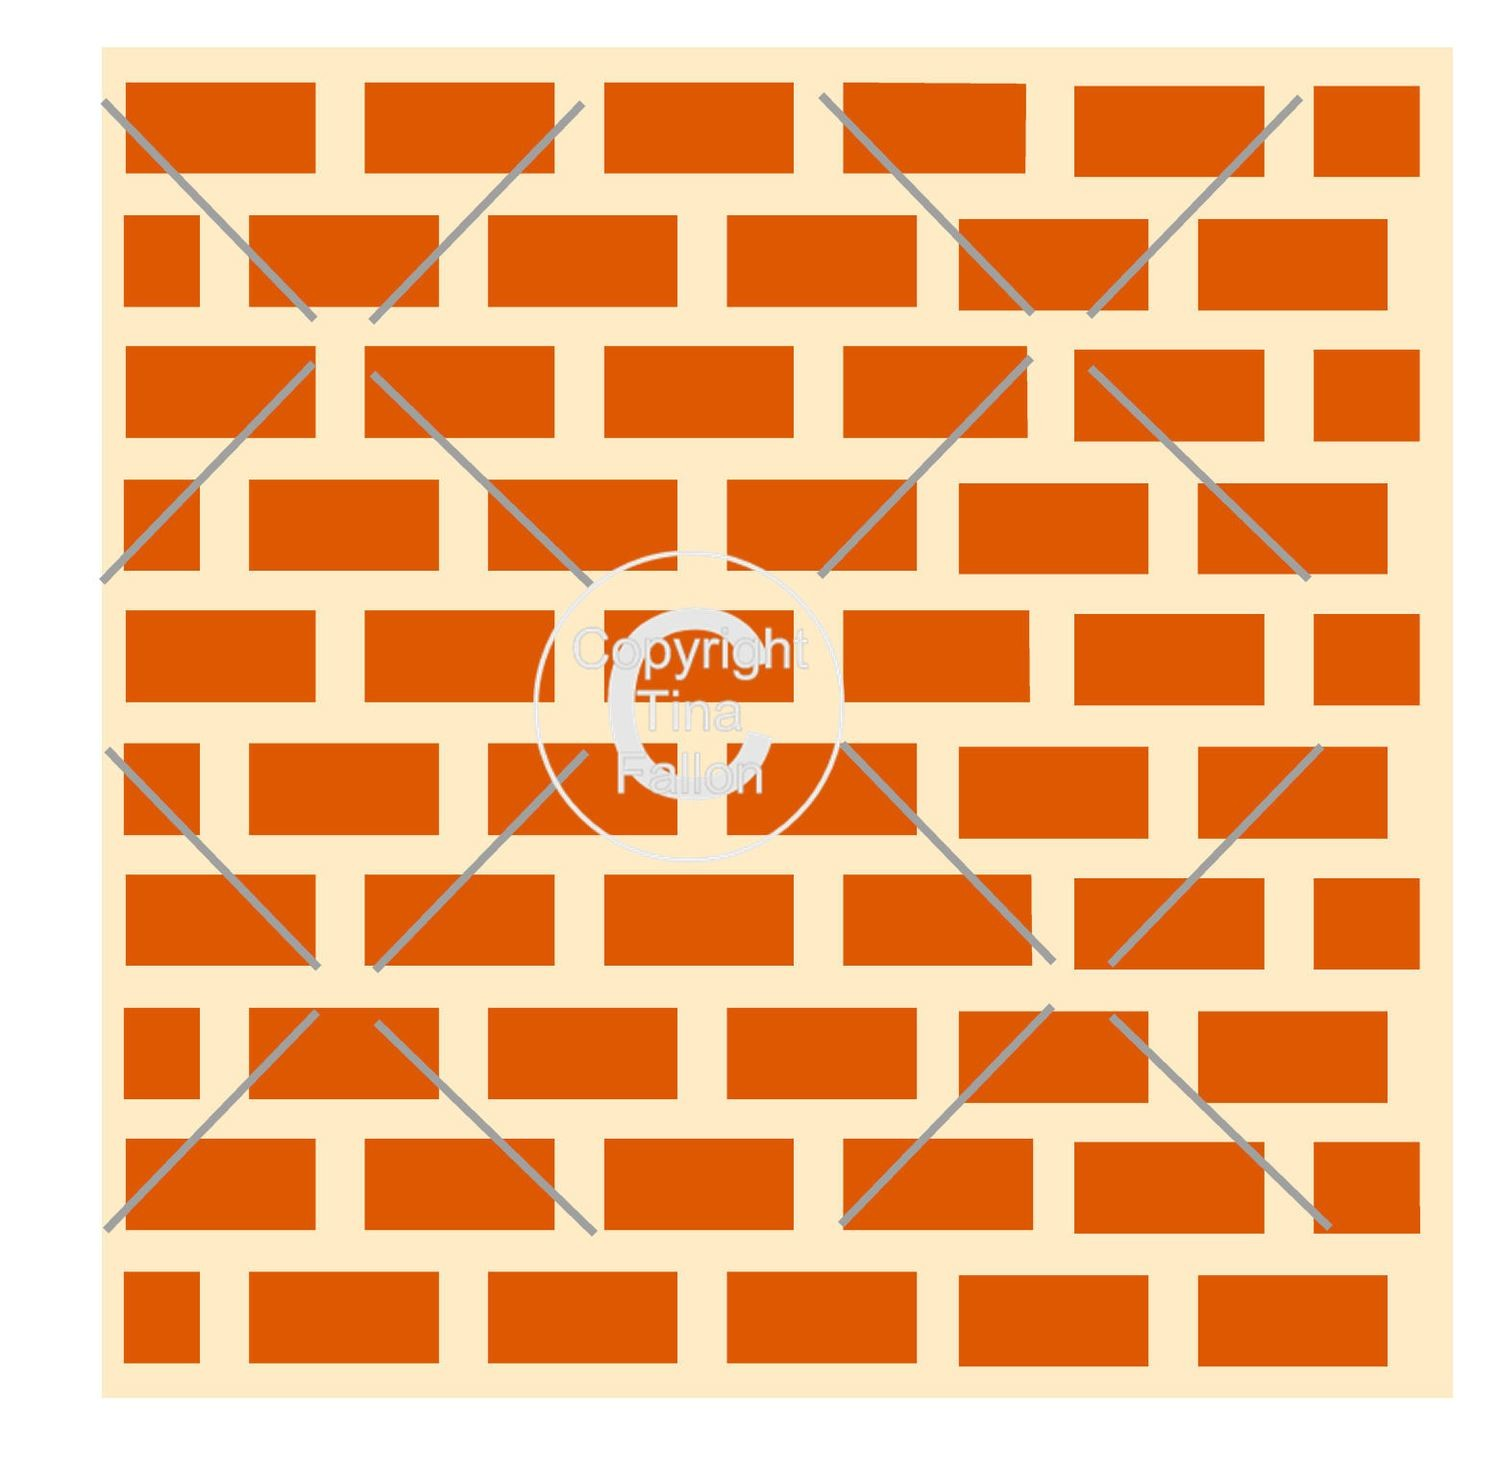 Brick Wall - Square template